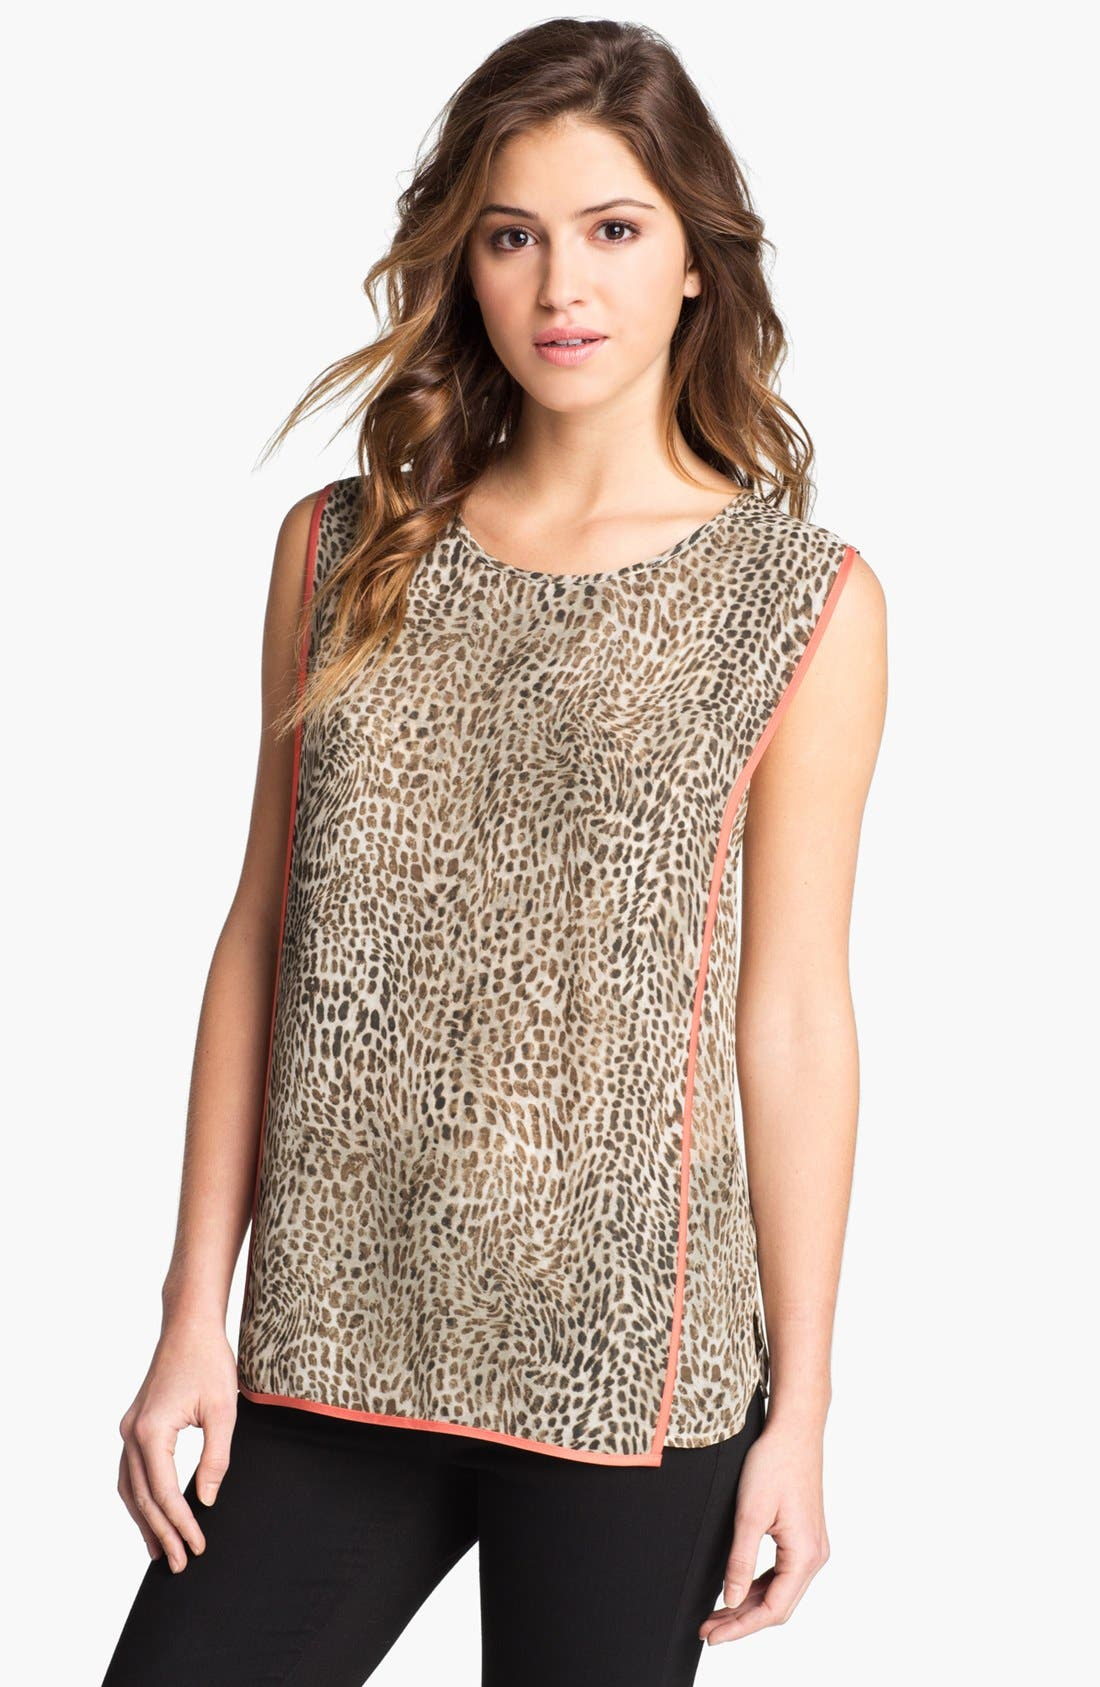 Alternate Image 1 Selected - Vince Camuto Cheetah Print Blouse